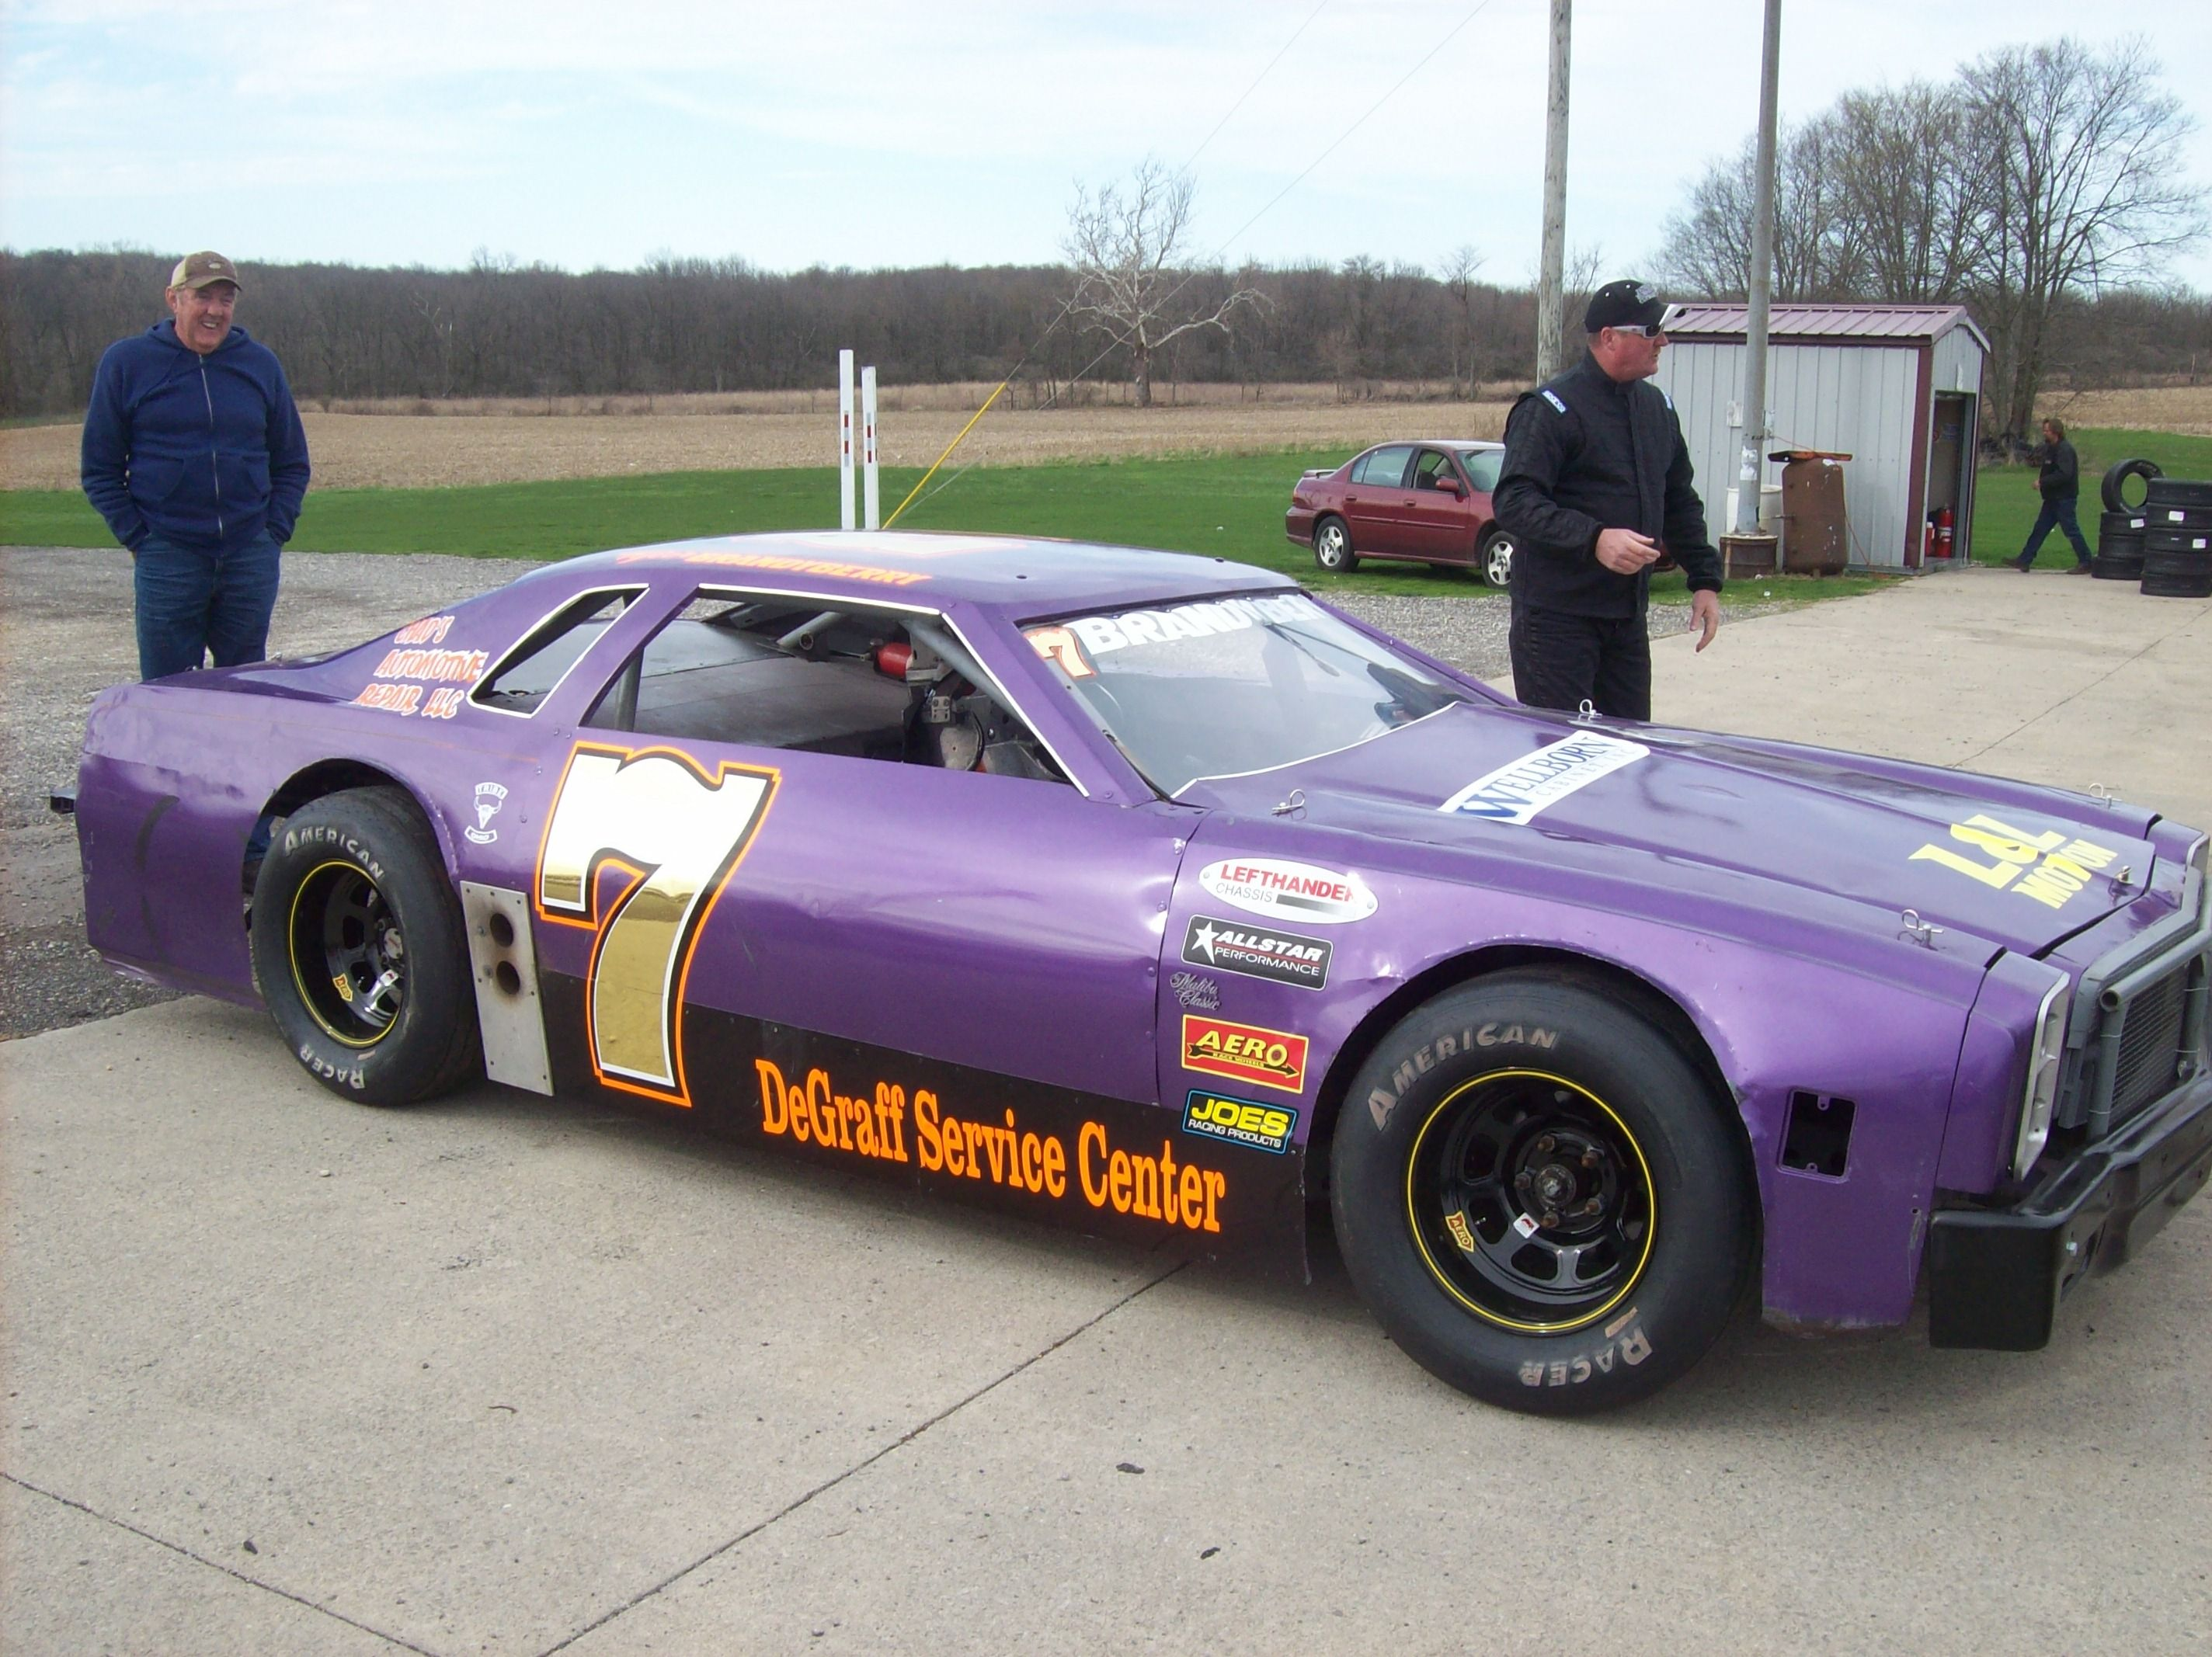 Best Stock Car Racing Images On Pinterest Racing Cars And